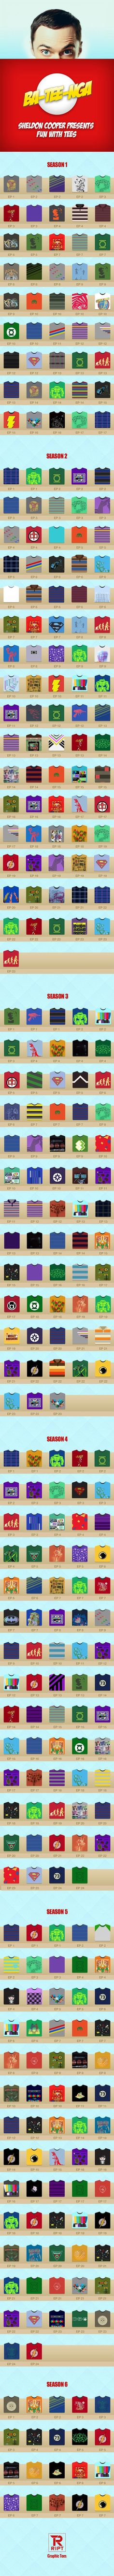 Dr. Sheldon Cooper's T-Shirt Collection